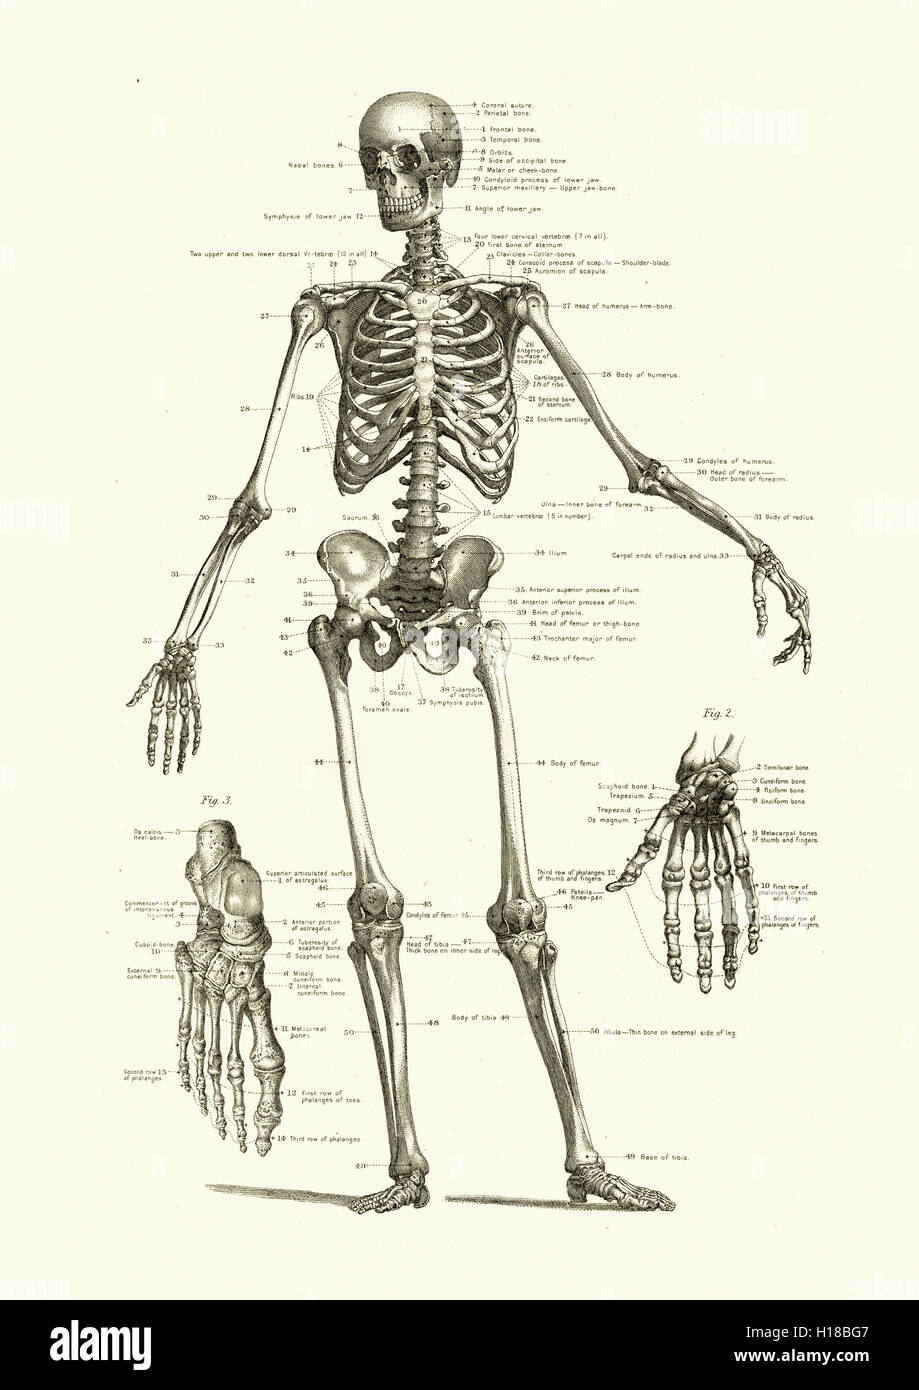 Human skeleton, showing the bones of the body - Stock Image